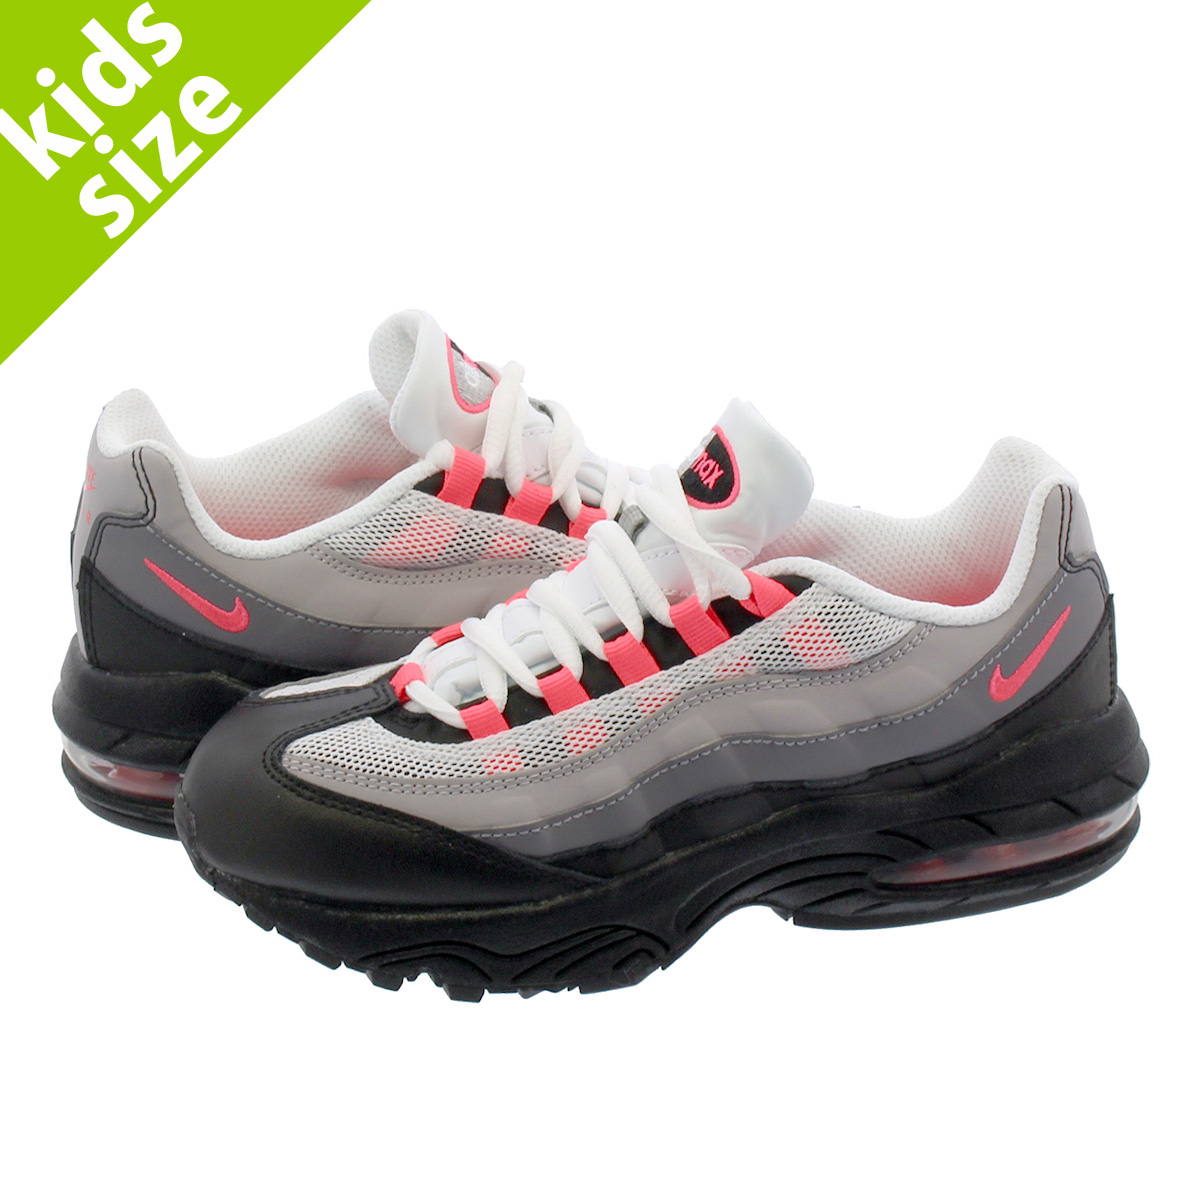 0b781f33dc LOWTEX BIG-SMALL SHOP: NIKE AIR MAX 95 PS Kie Ney AMAX SE PS BLACK/SOLAR  RED GUNSMOKE | Rakuten Global Market